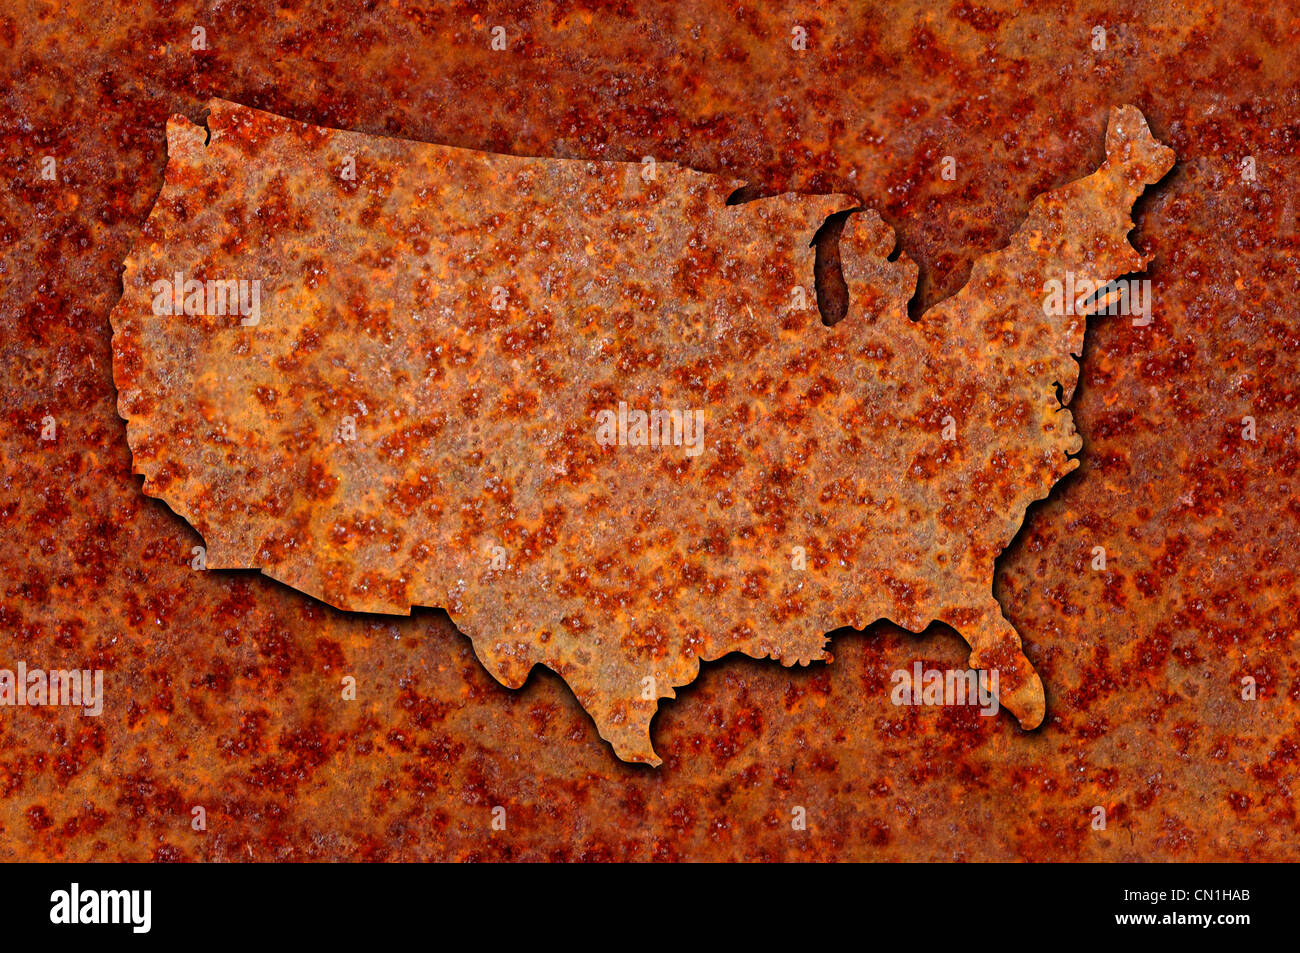 Rusted corroded metal map of the United States seamlessly tileable, reddish orange in color. - Stock Image